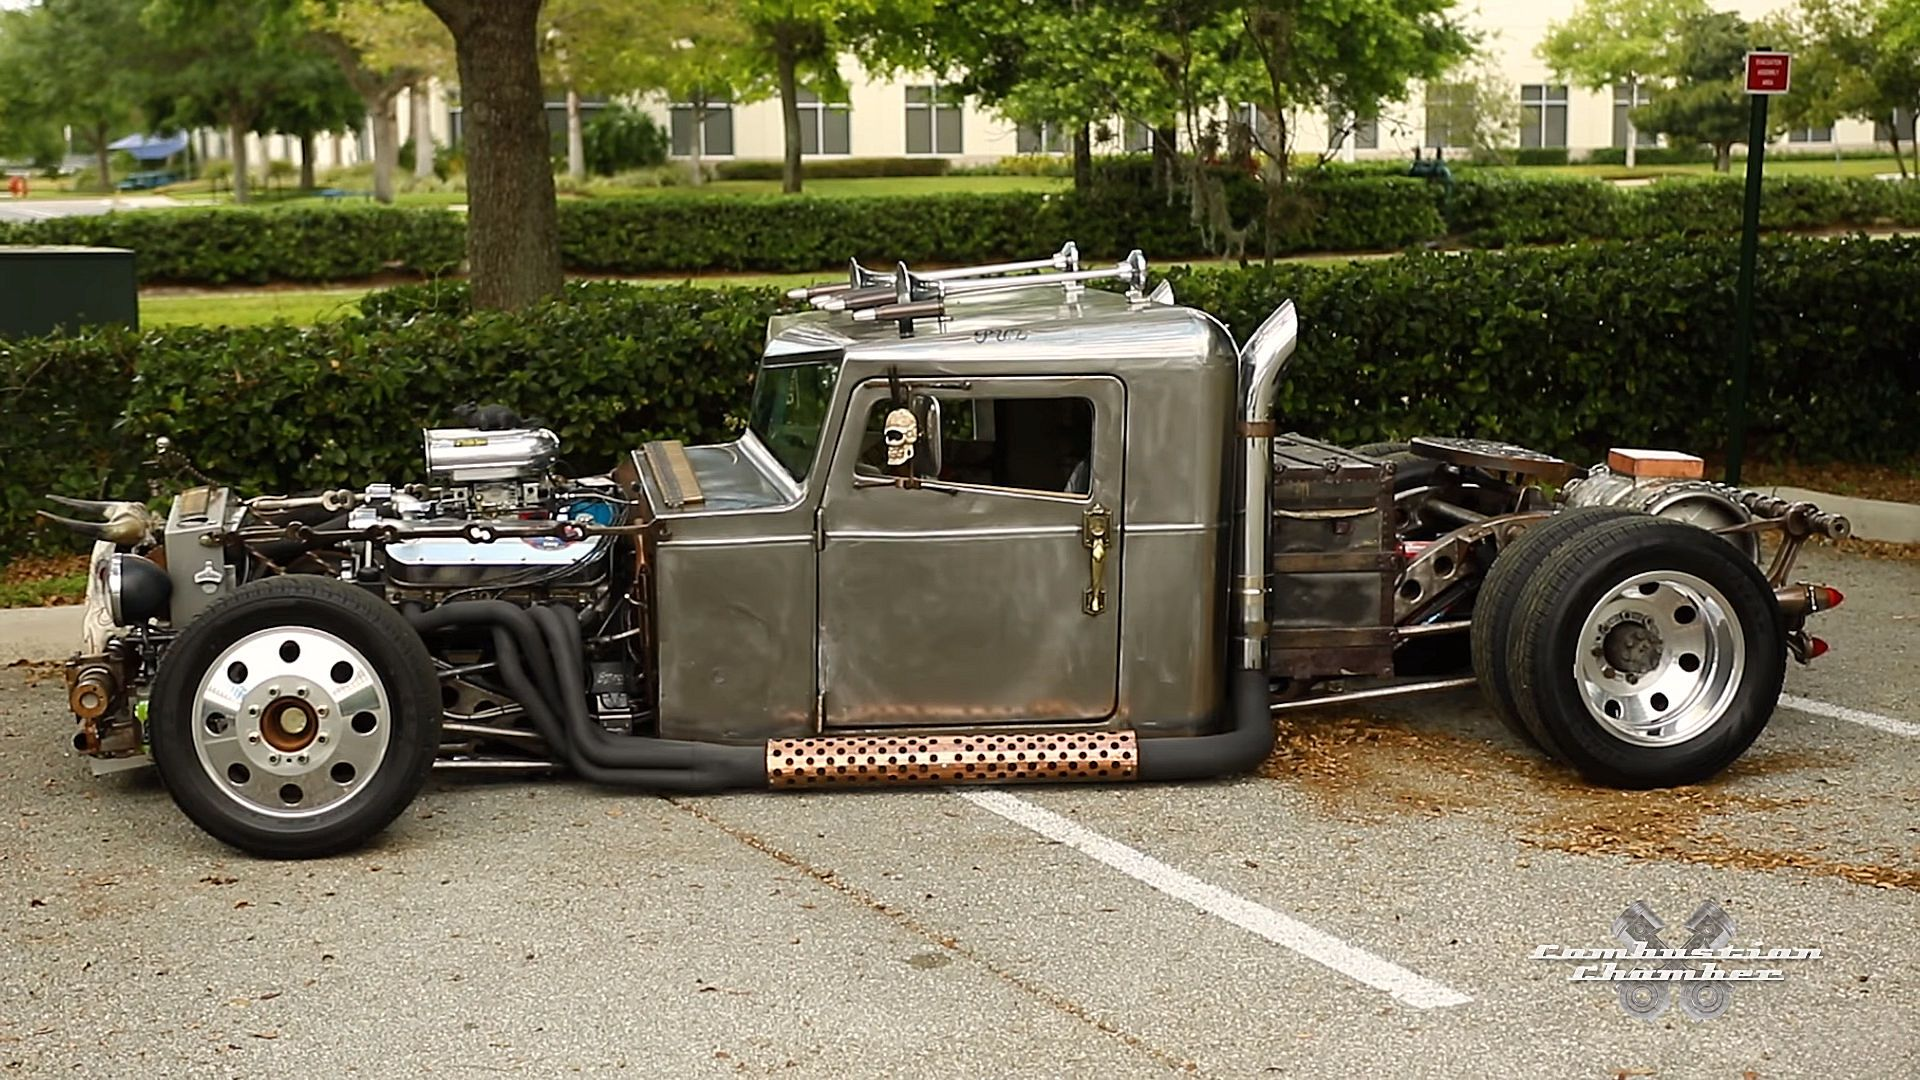 Ratical A Completely Hand Built Dually Rat Rod Truck By Sean Puz Rat Rods Truck Rat Rod Truck Rat Rod